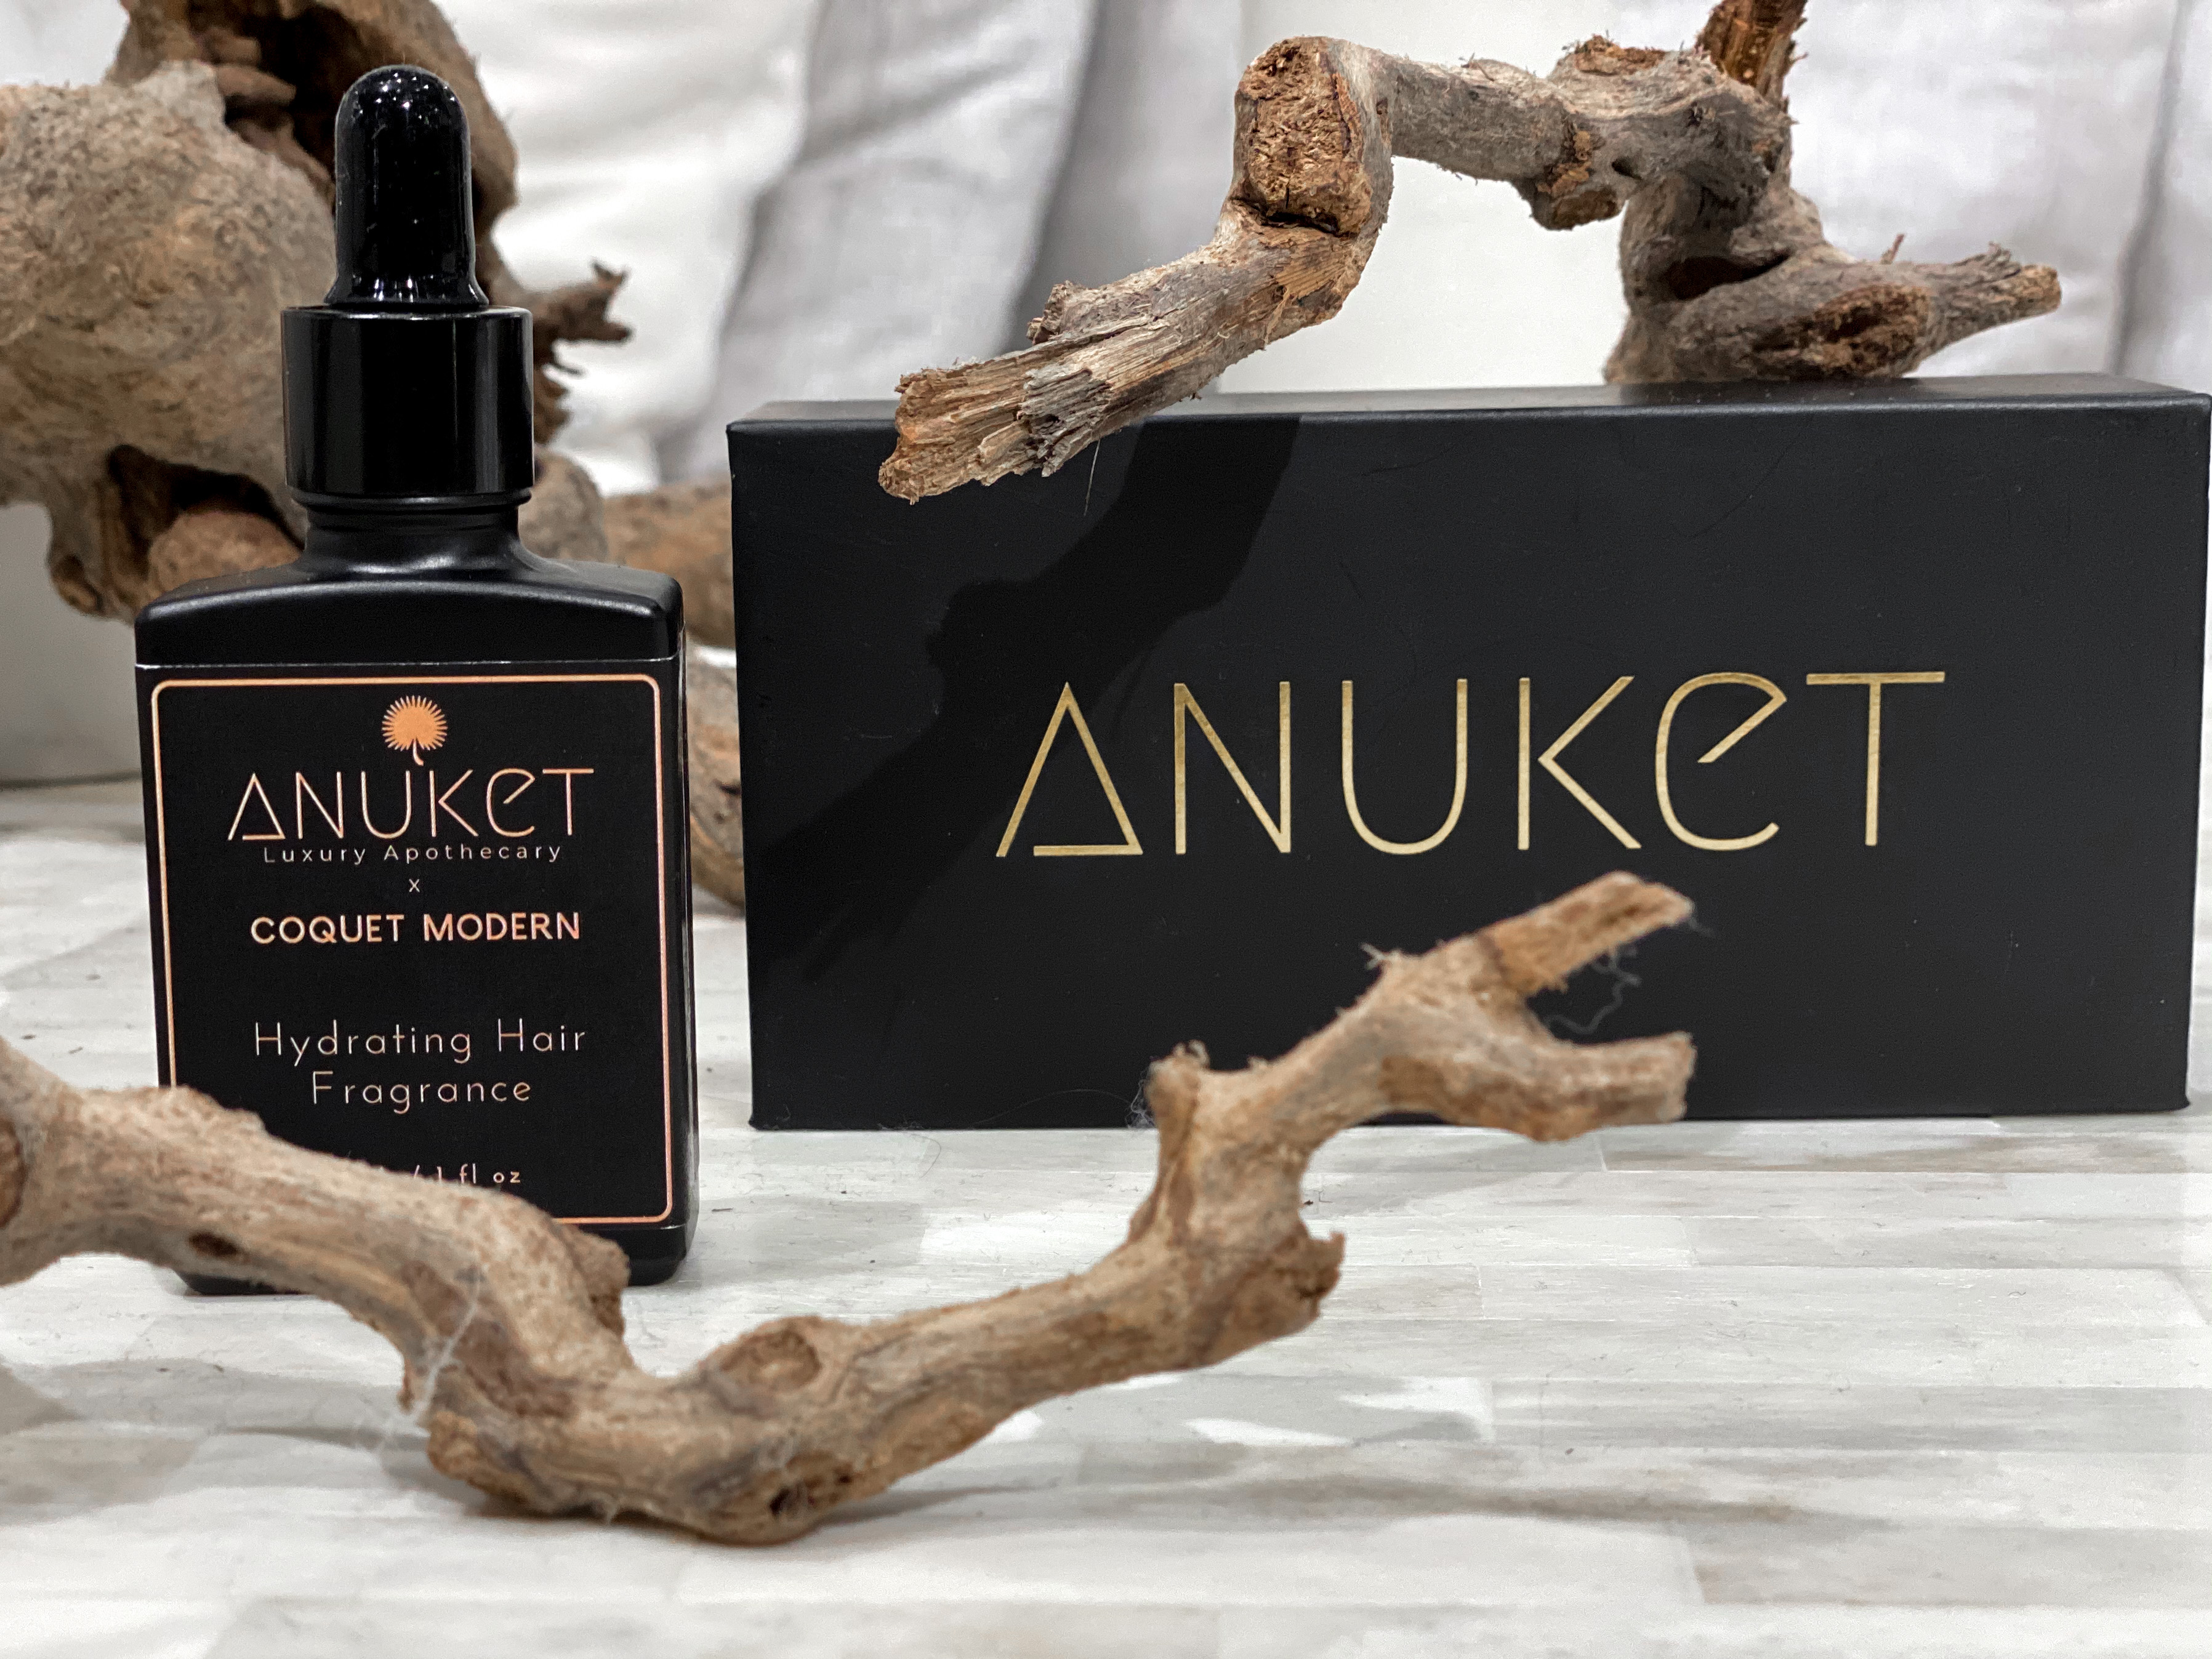 Bottle of Anuket Luxury's Hydrating Hair Fragrance on table next to black packaging keep sake box, with wood branches